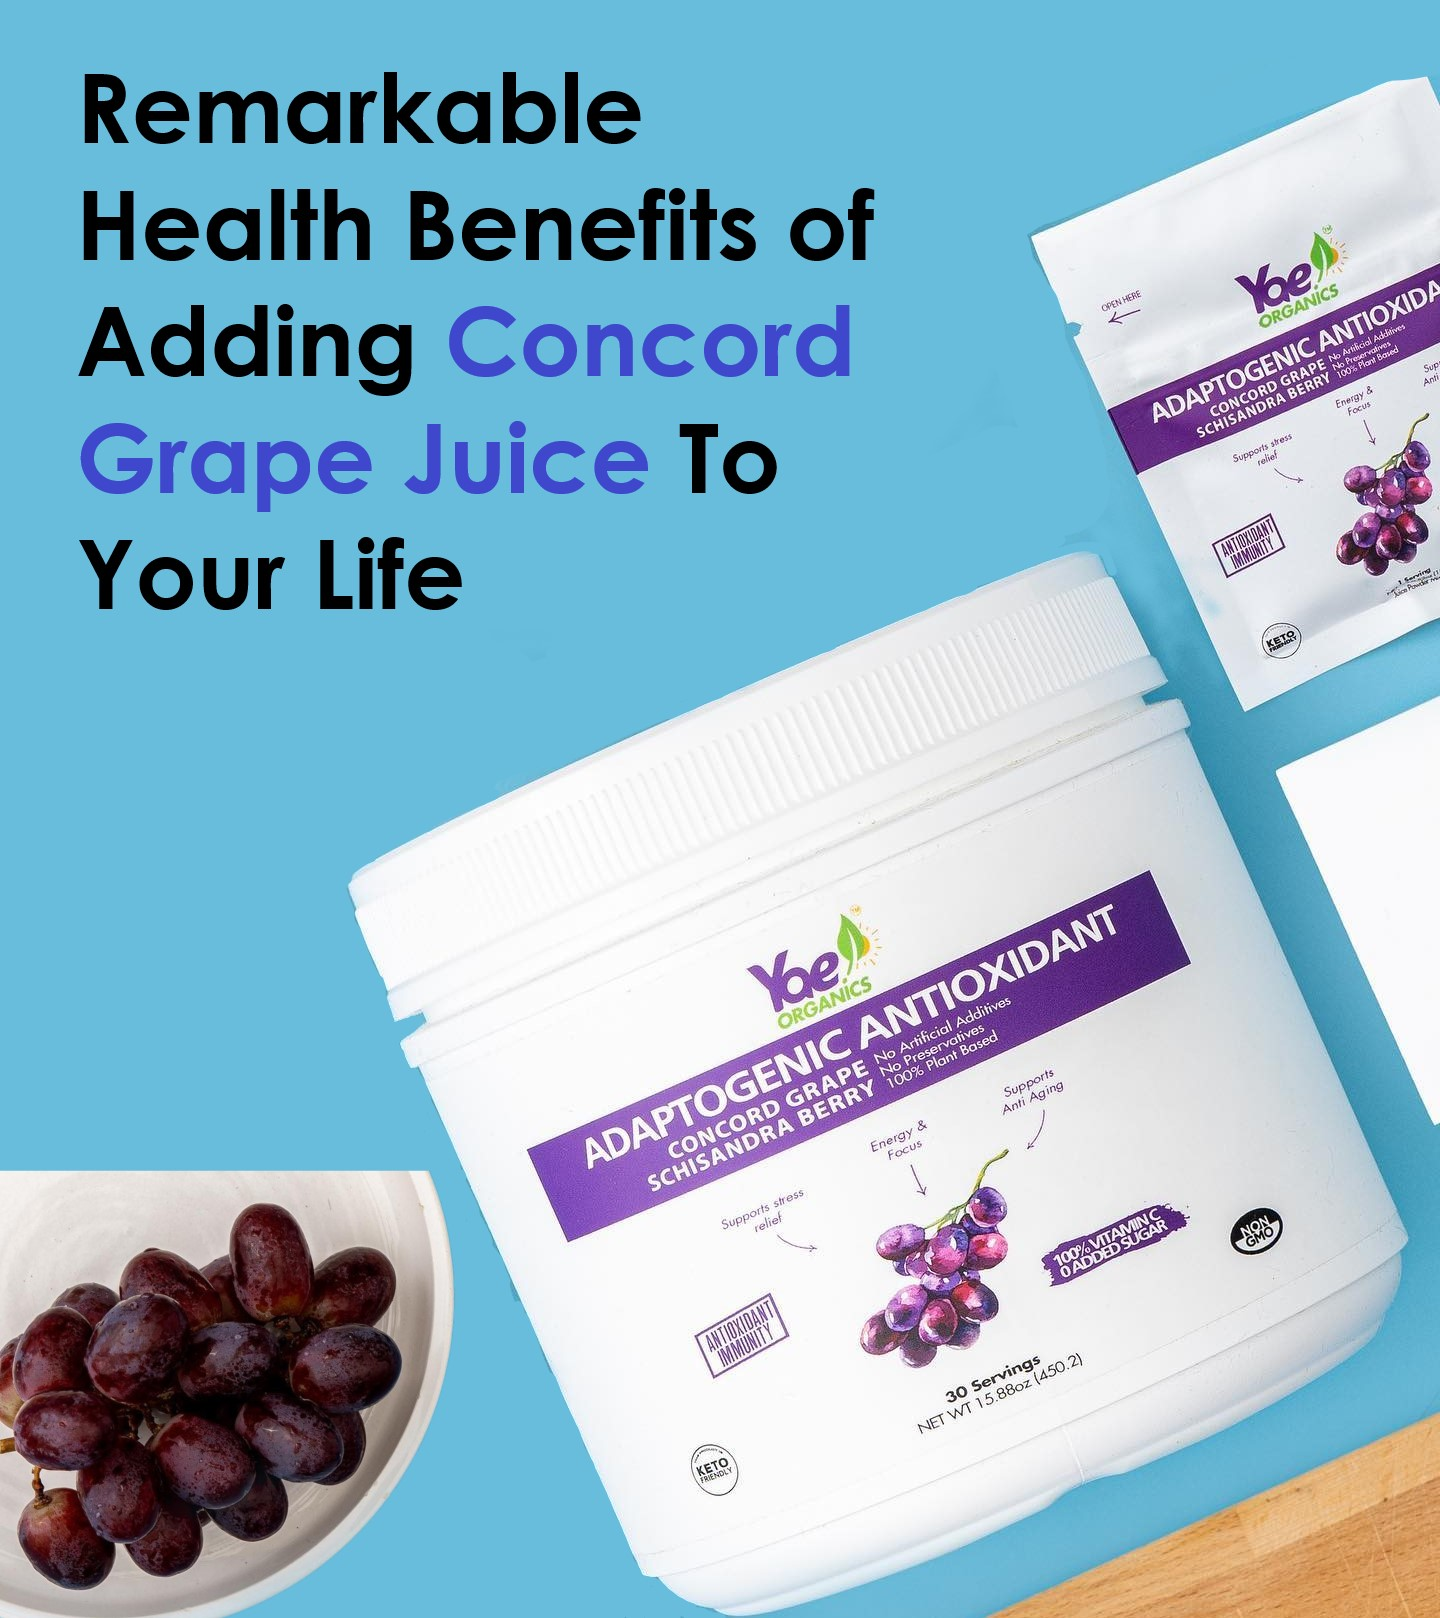 Remarkable Health Benefits of Adding Concord Grape Juice To Your Life